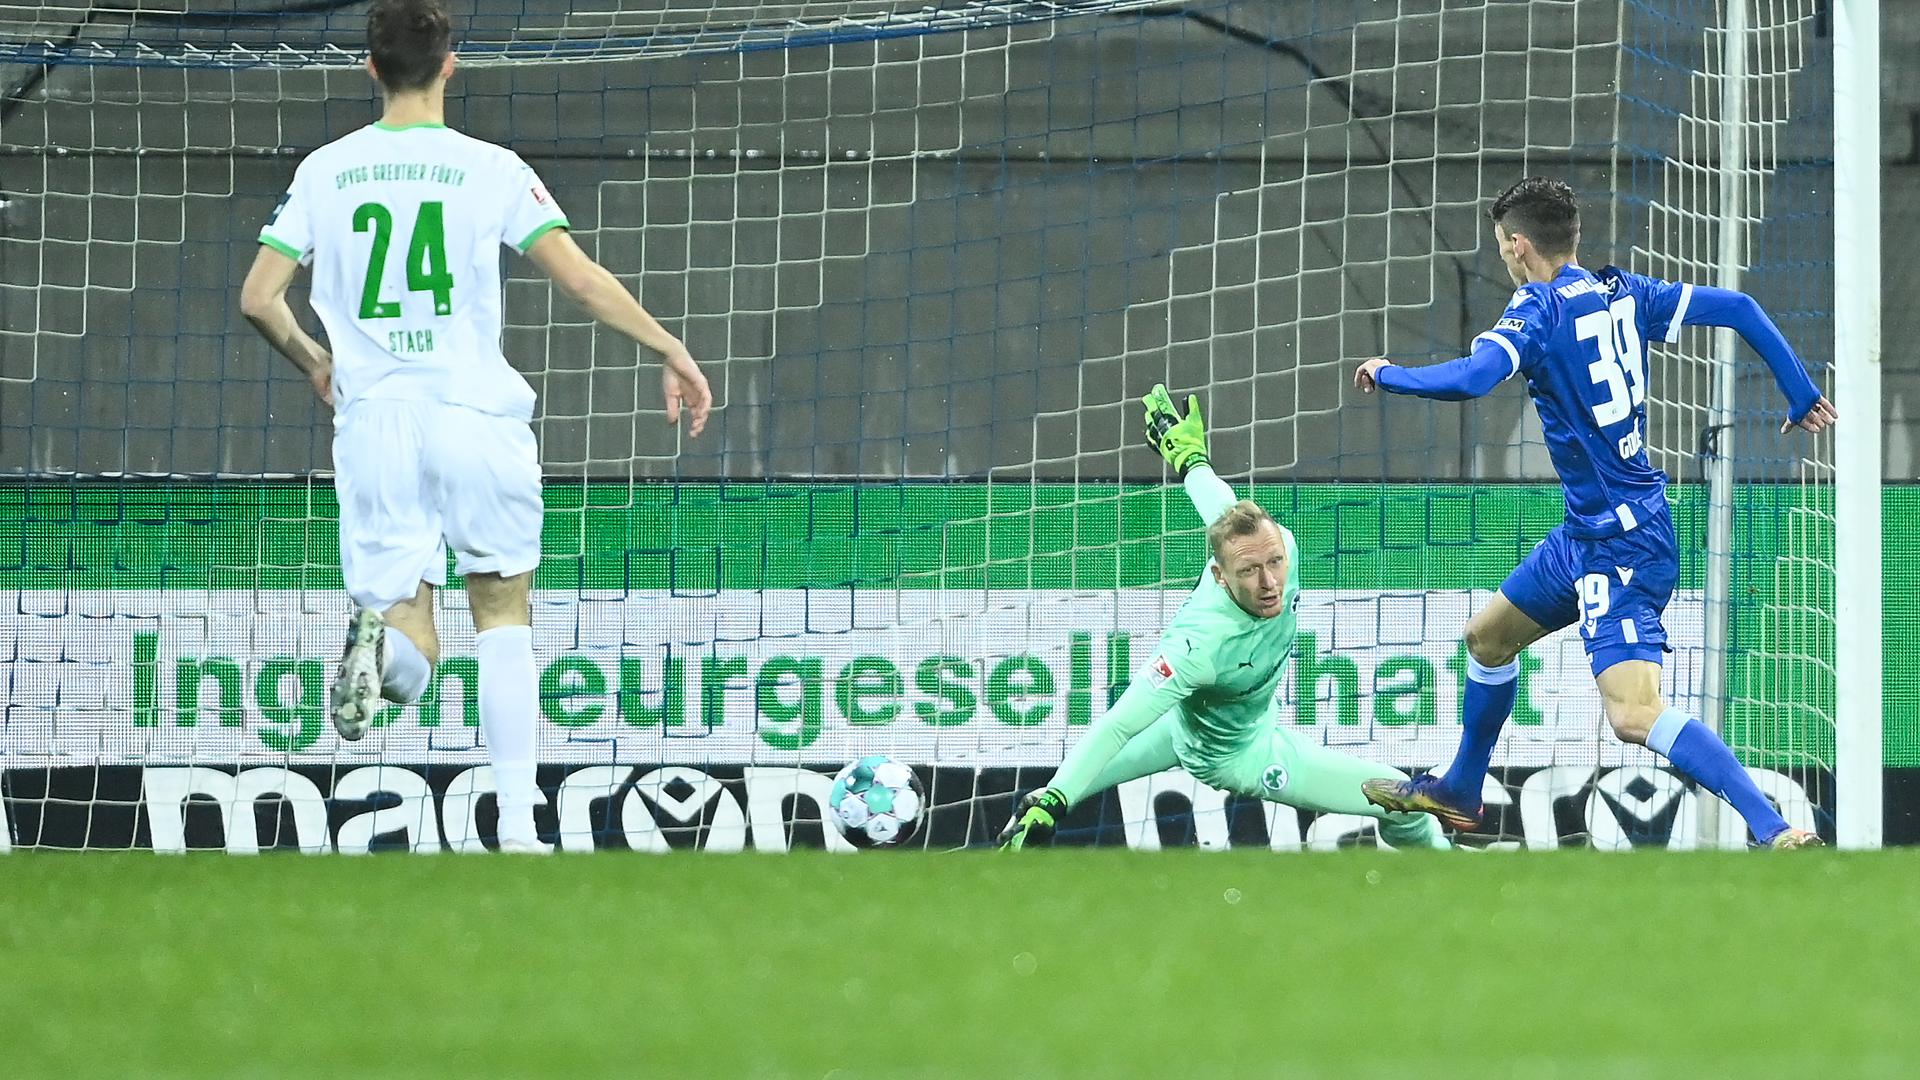 Benjamin Goller (KSC) schiesst das Tor zum 1-0 gegen Torwart Sascha Burchert (Fuerth).  GES/ Fussball/ 2. Bundesliga: Karlsruher SC - SpVgg Greuther Fuerth, 08.01.2021  --  Football/ Soccer 2nd Division: Karlsruhe vs Fuerth, Karlsruhe,  Jan 08, 2021 -- DFL regulations prohibit any use of photographs as image sequences and/or quasi-video.